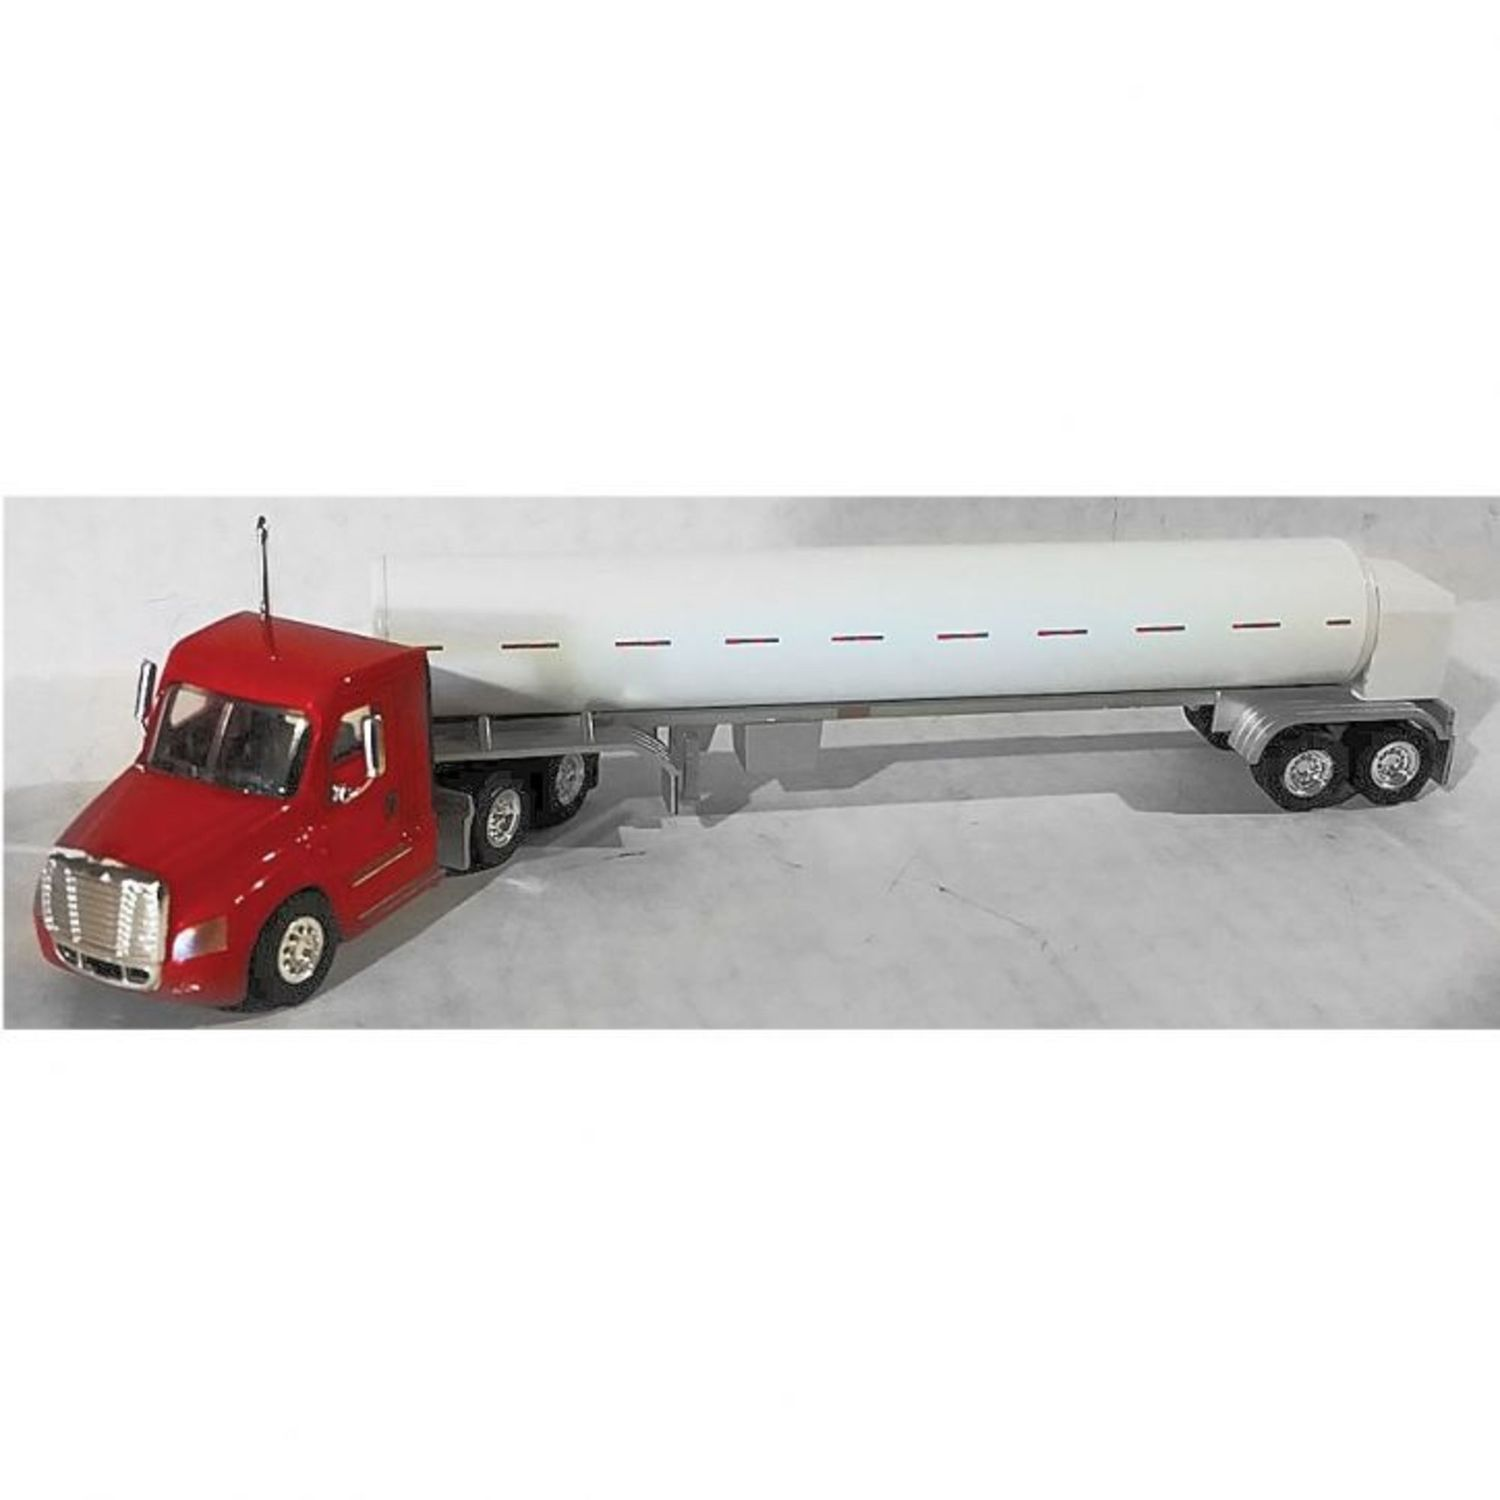 H0 Cascadia Day-Cab Tractor w/Cryo Tank Trailer - Assembled